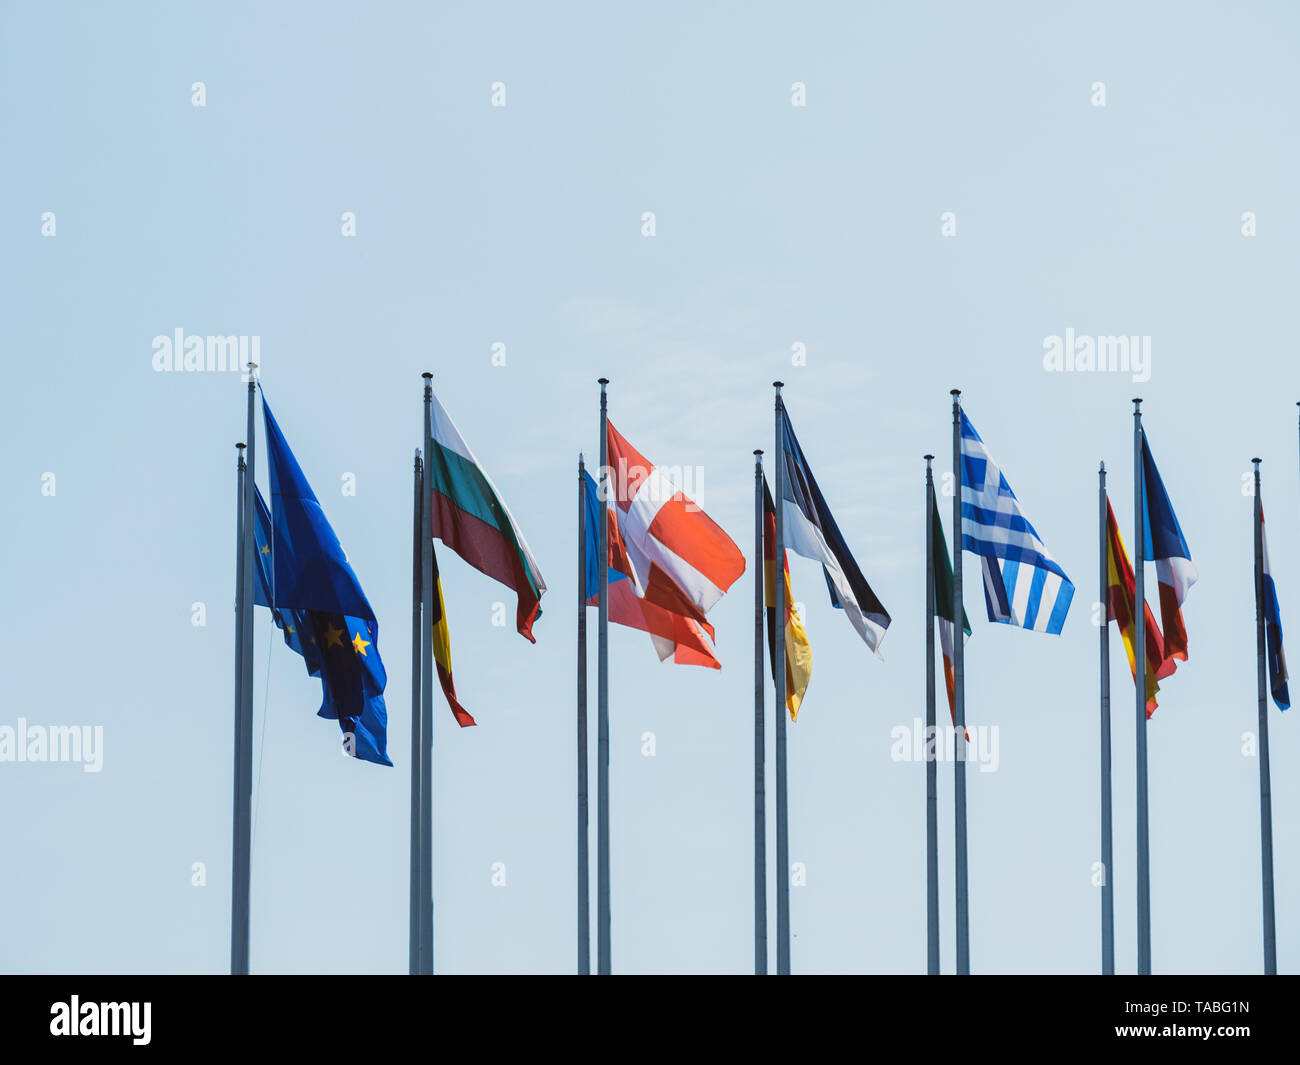 The Member States of the European Union French, Eu, Hungary, Estonia, Germany, Spain, Greece waving in calm weather with blue sky in background a day before European parliamentary elections in Europe - Stock Image